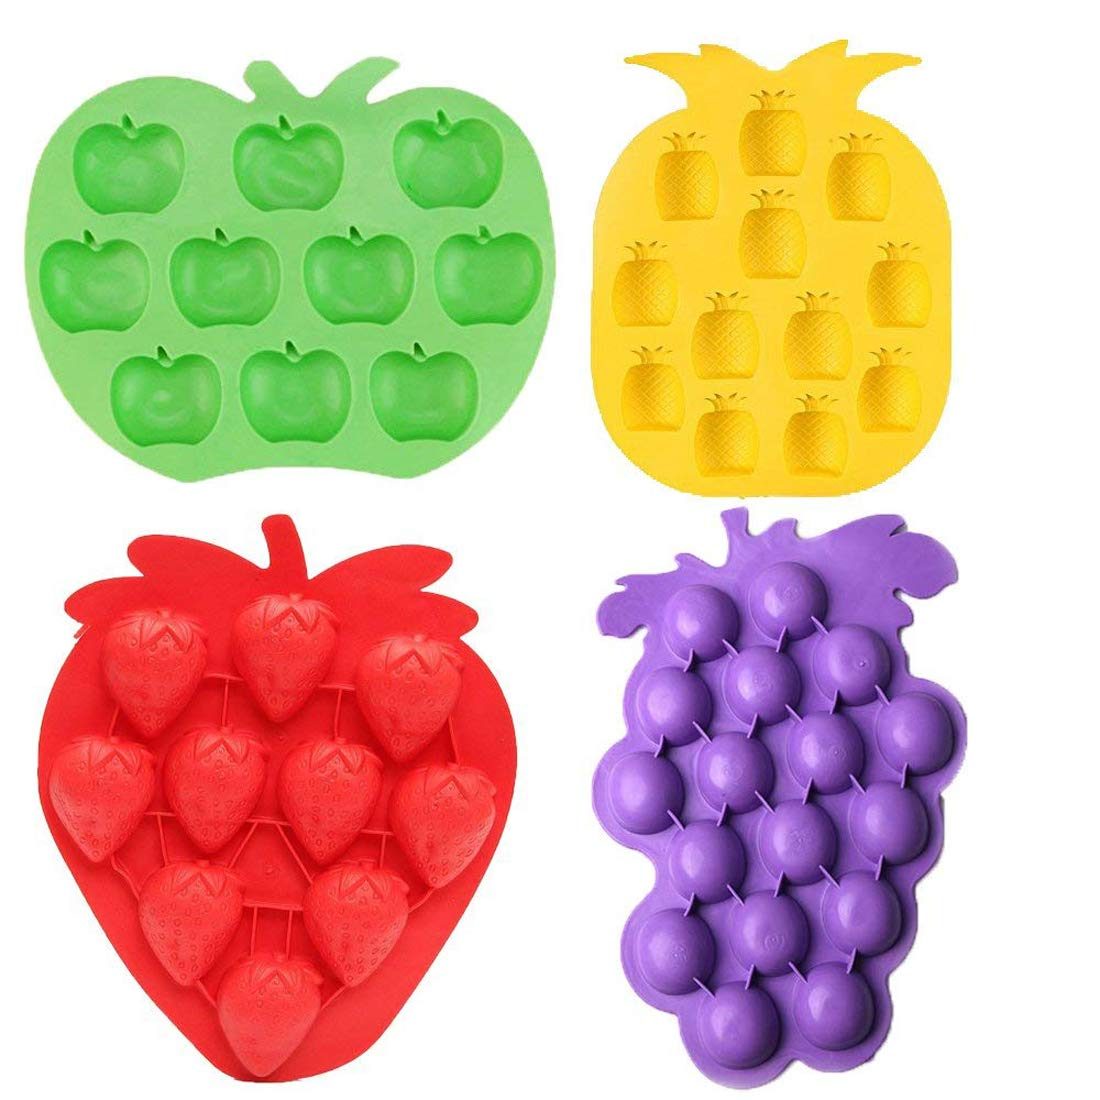 LQQDD Fruits Series Silicone Fondant Mold Candy Mold Strawberries Pineapples Apples Grapes Mold for Sugarcraft Cake Decoration Candy Mold Cupcake Topper Summer Ice Cube Tray (Set of 4)